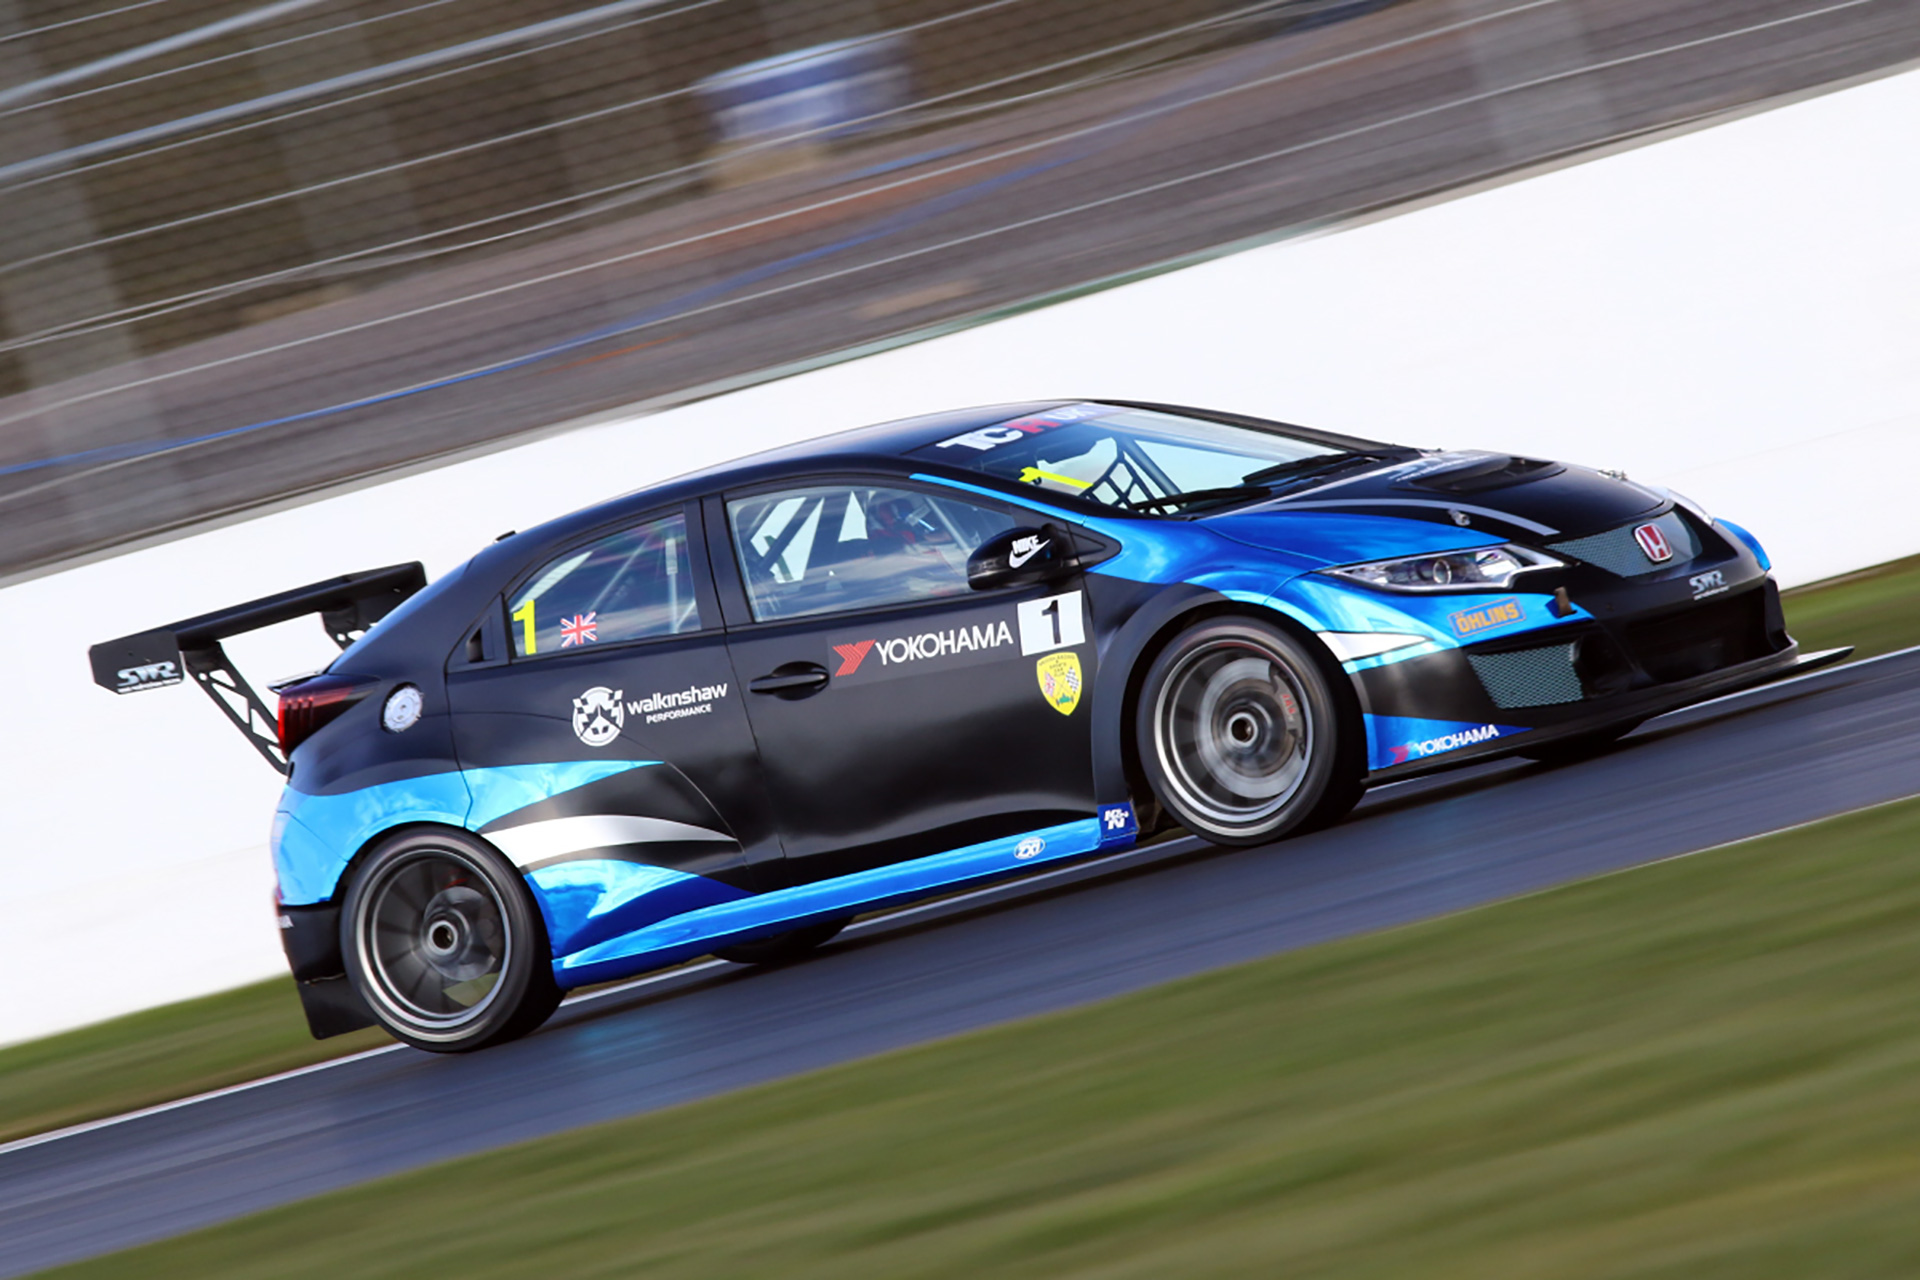 Rock Oil branding to appear on SWR's Honda Civic Type-R in TCR UK.